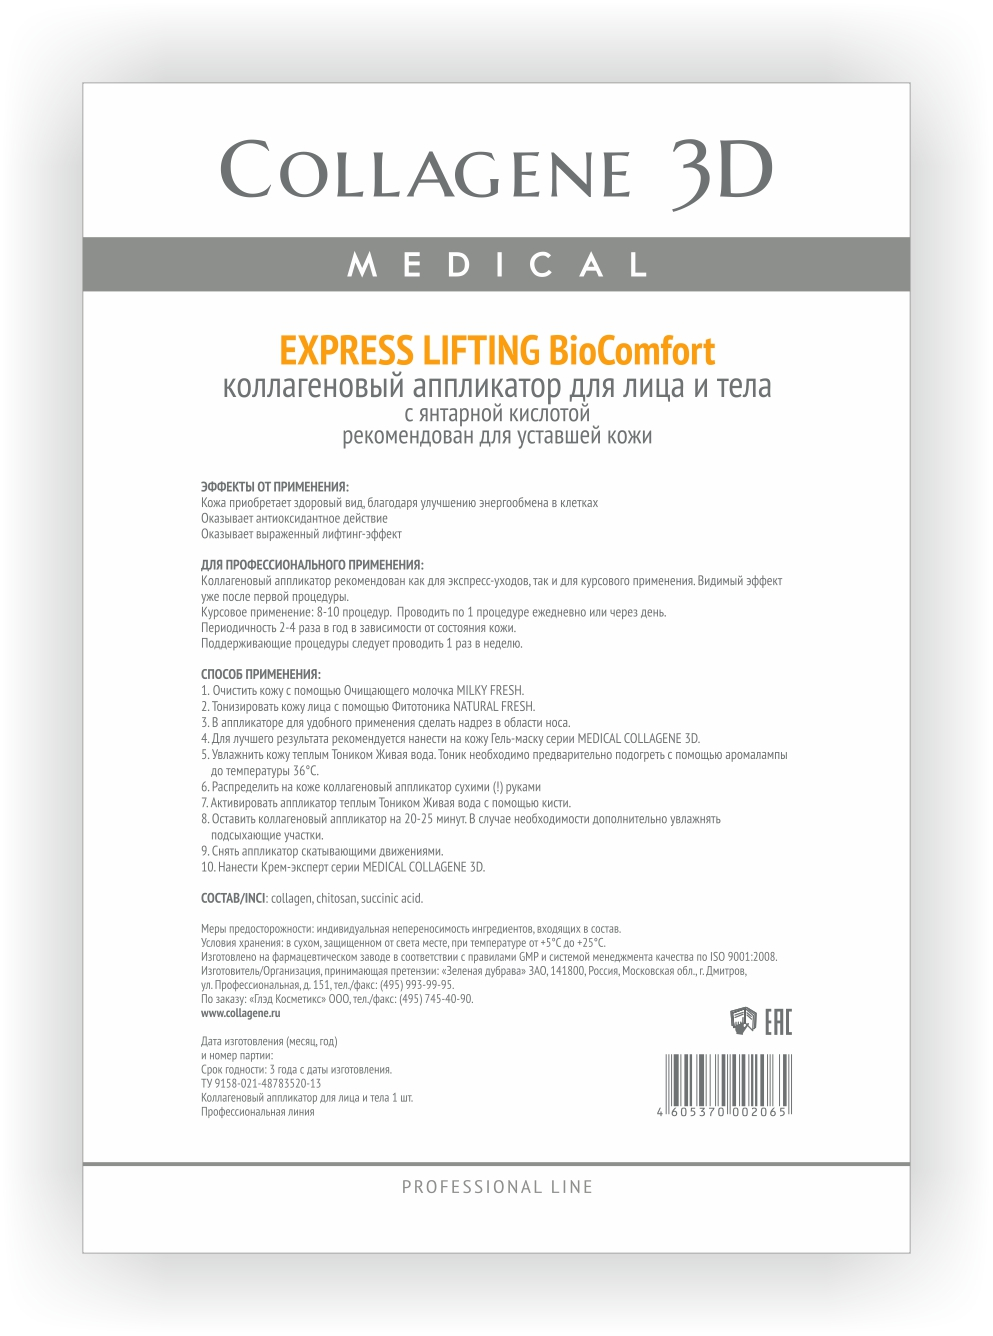 "MEDICAL COLLAGENE 3D Аппликатор коллагеновый с янтарной кислотой для лица и тела ""Express Lifting"" А4"